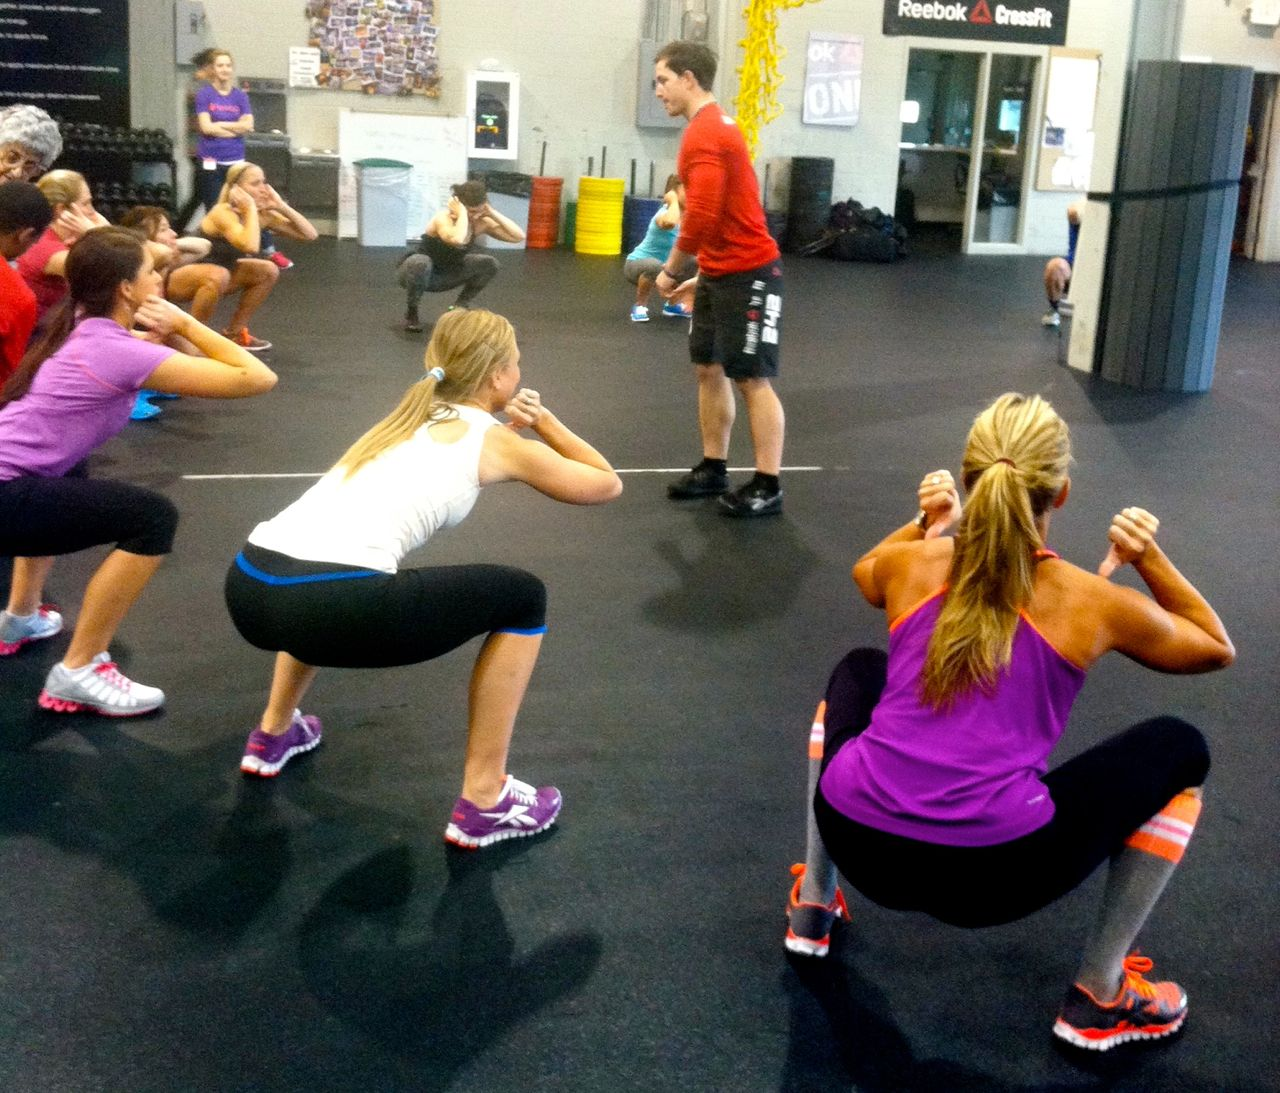 Crossfit Makes Your Clothes Fall Off Workout And Training Tips For Leg Butt Toning Circuit Pfitblog 5